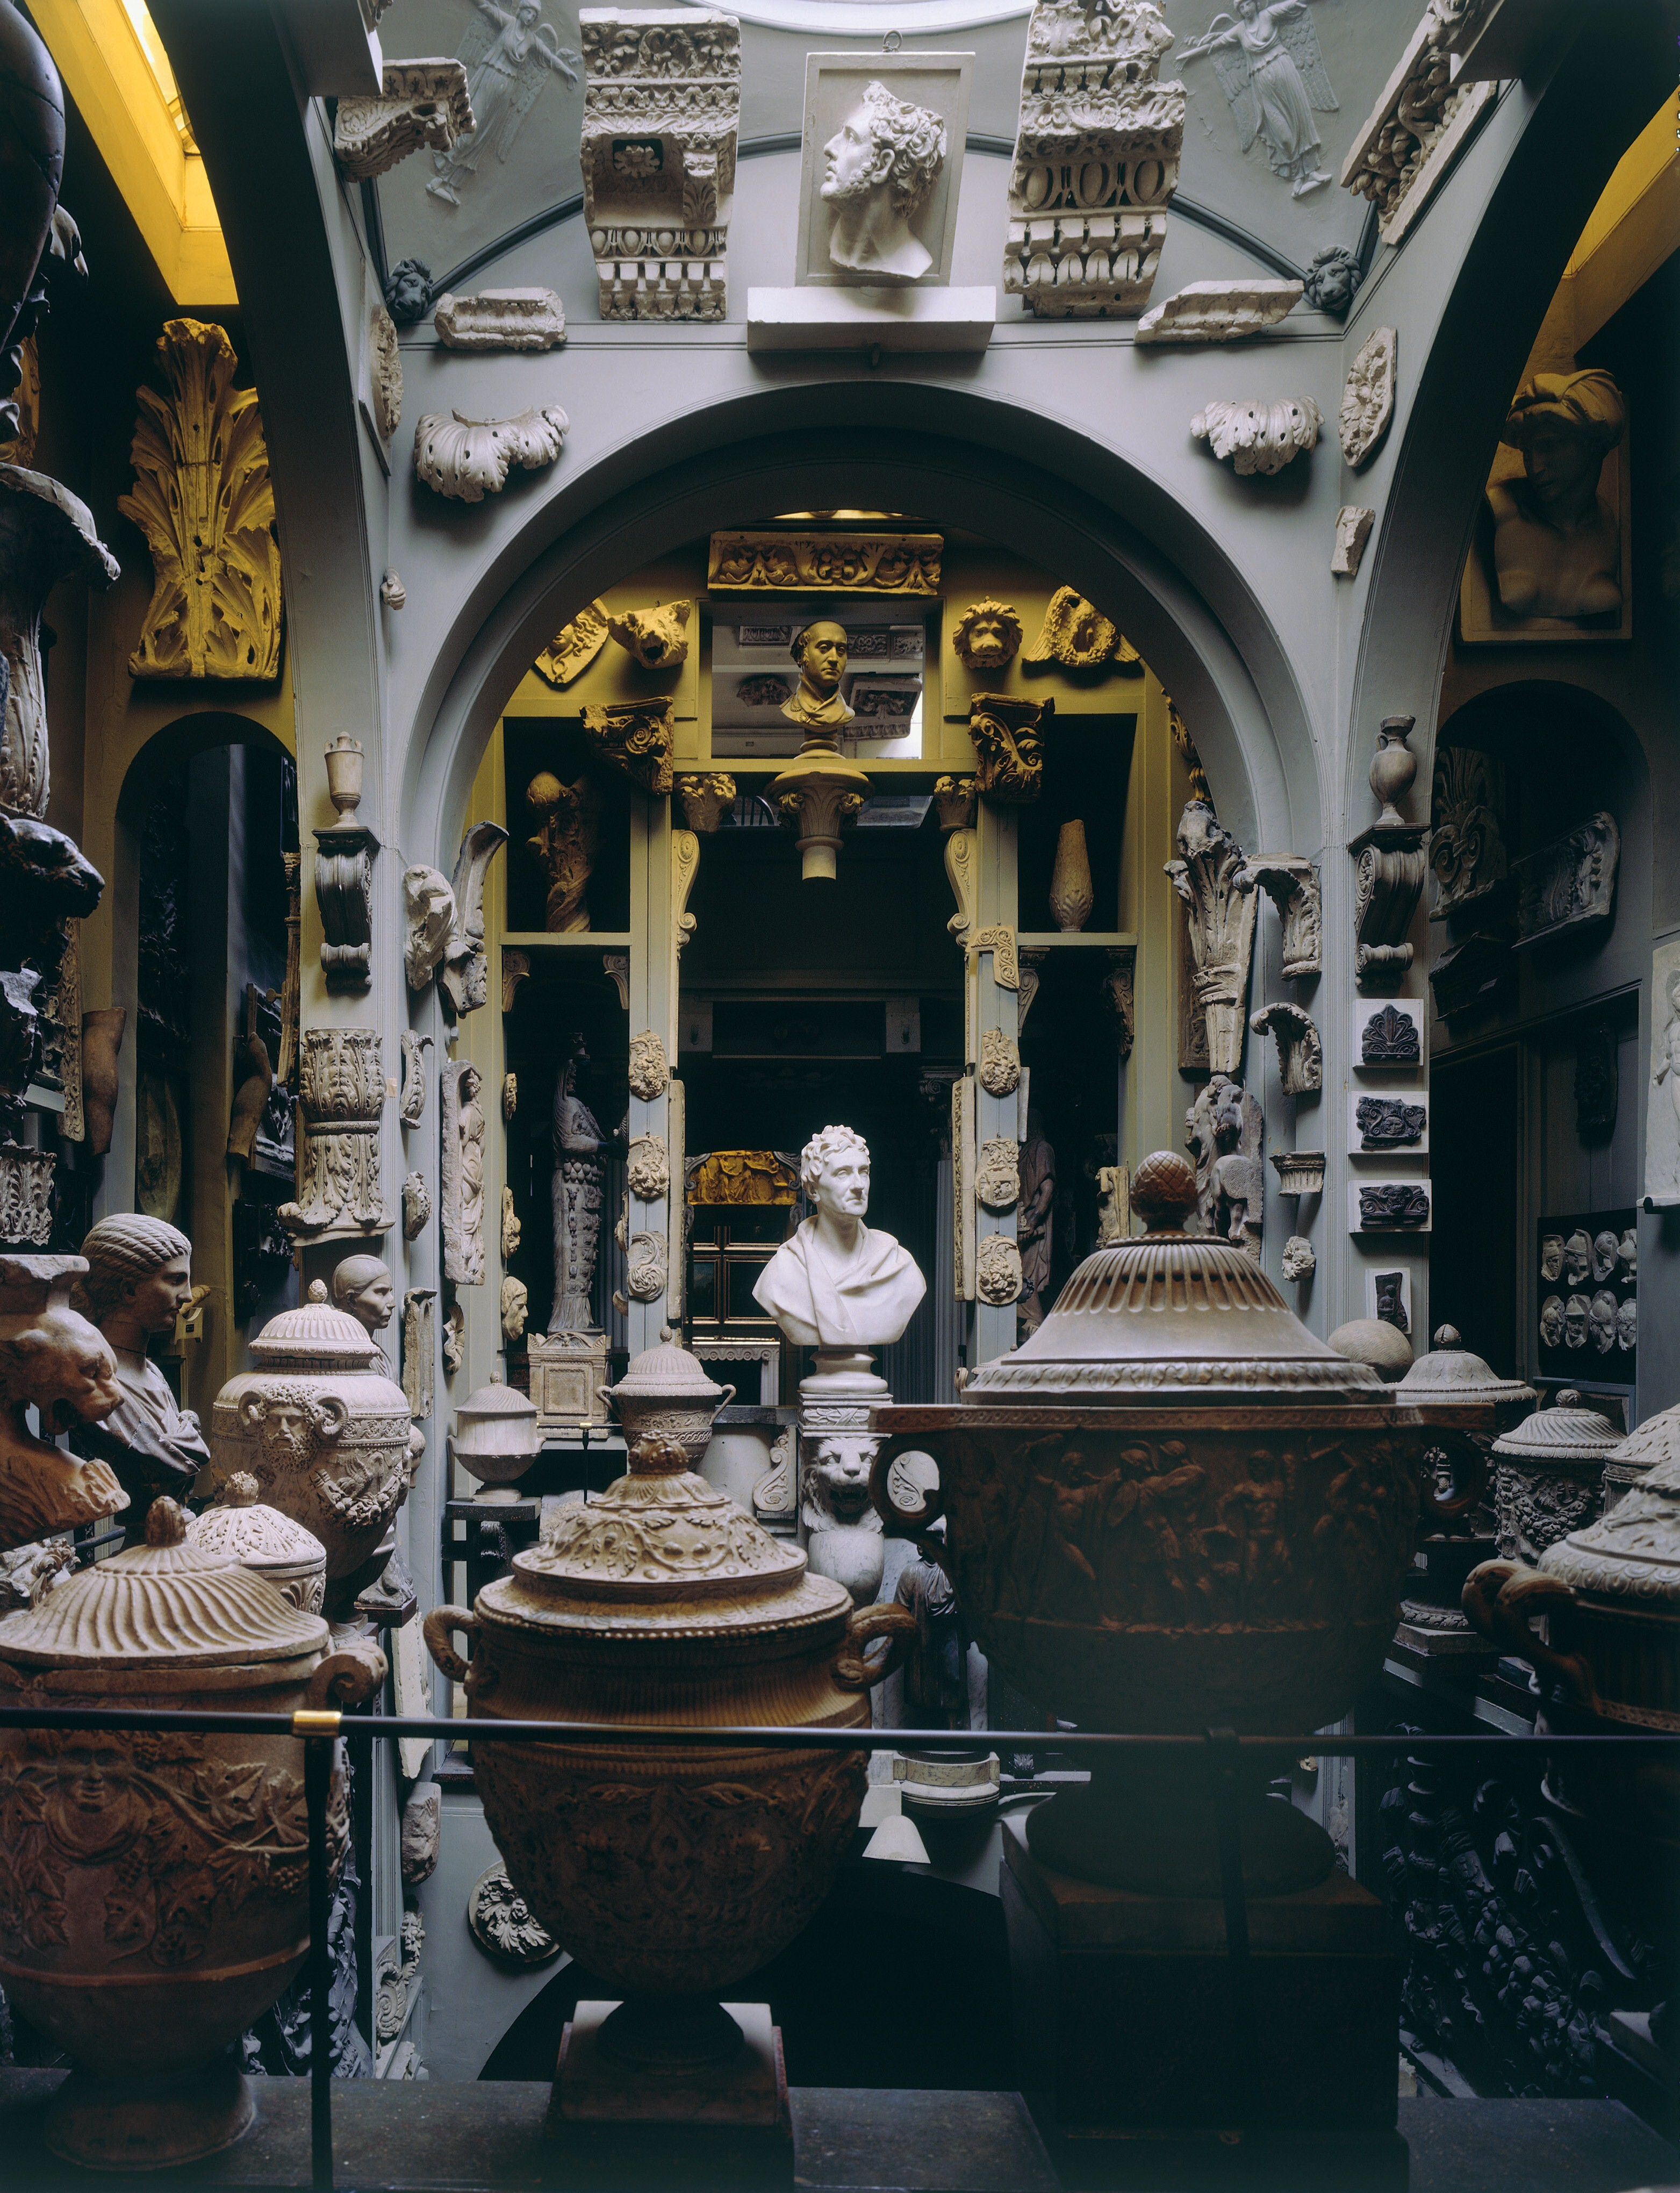 Picture showing various sculptures and artefacts inside the museumClassic